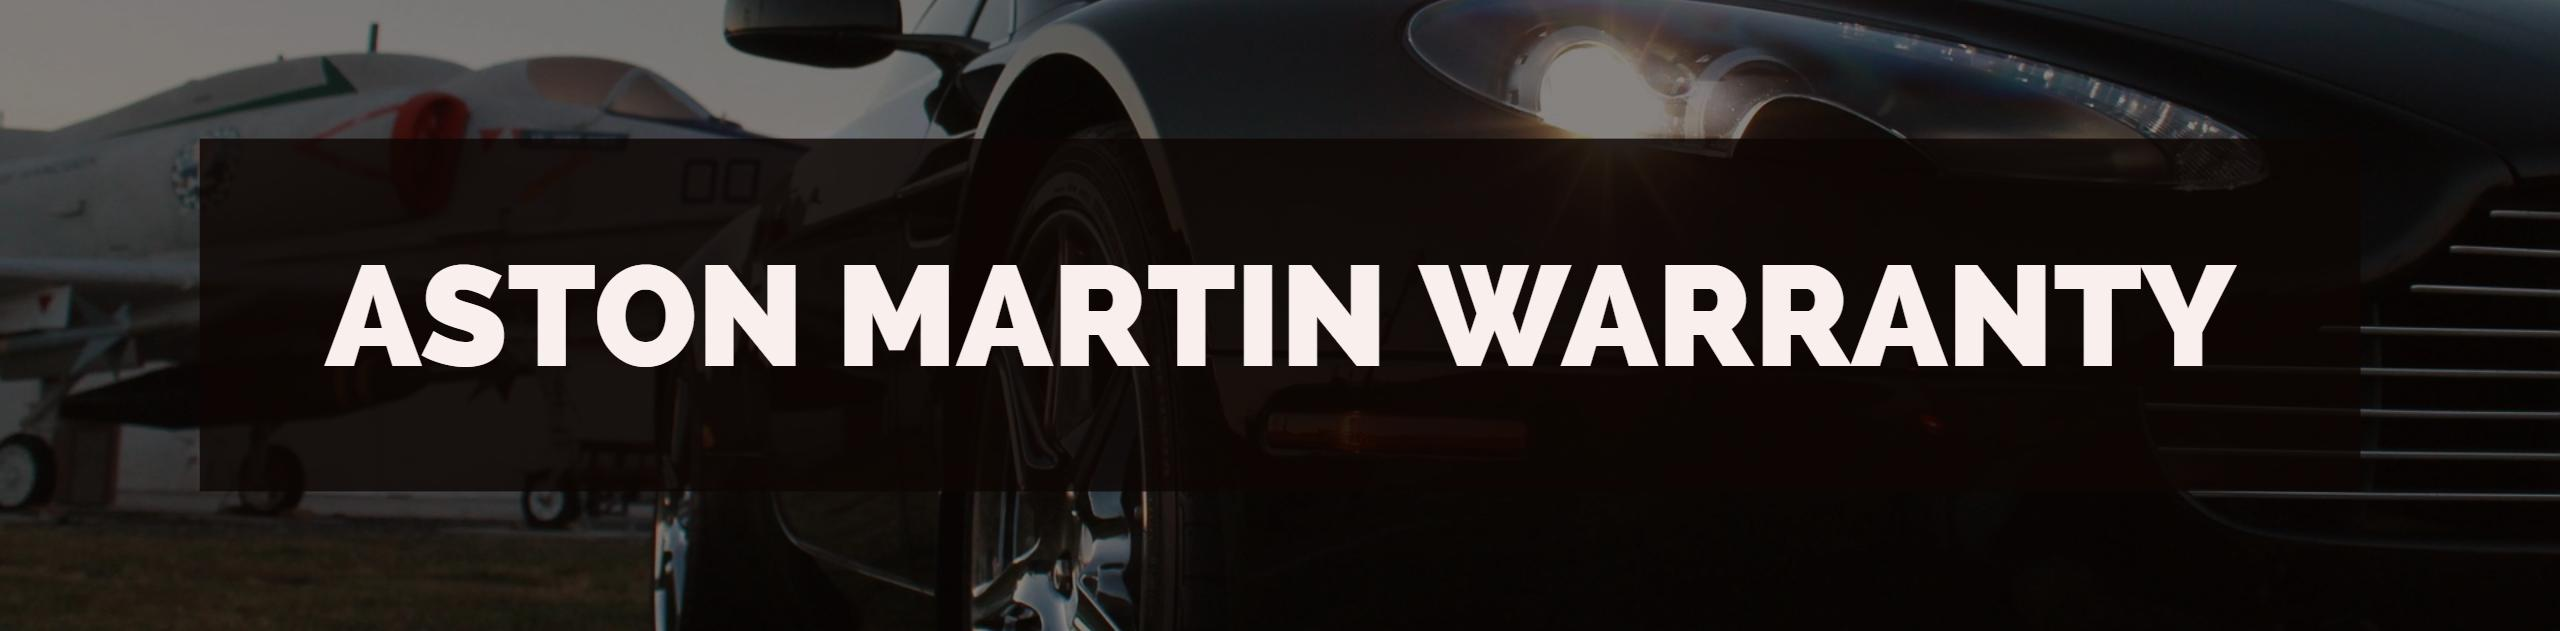 Aston Martin Warranty Processing, Training, Auditing